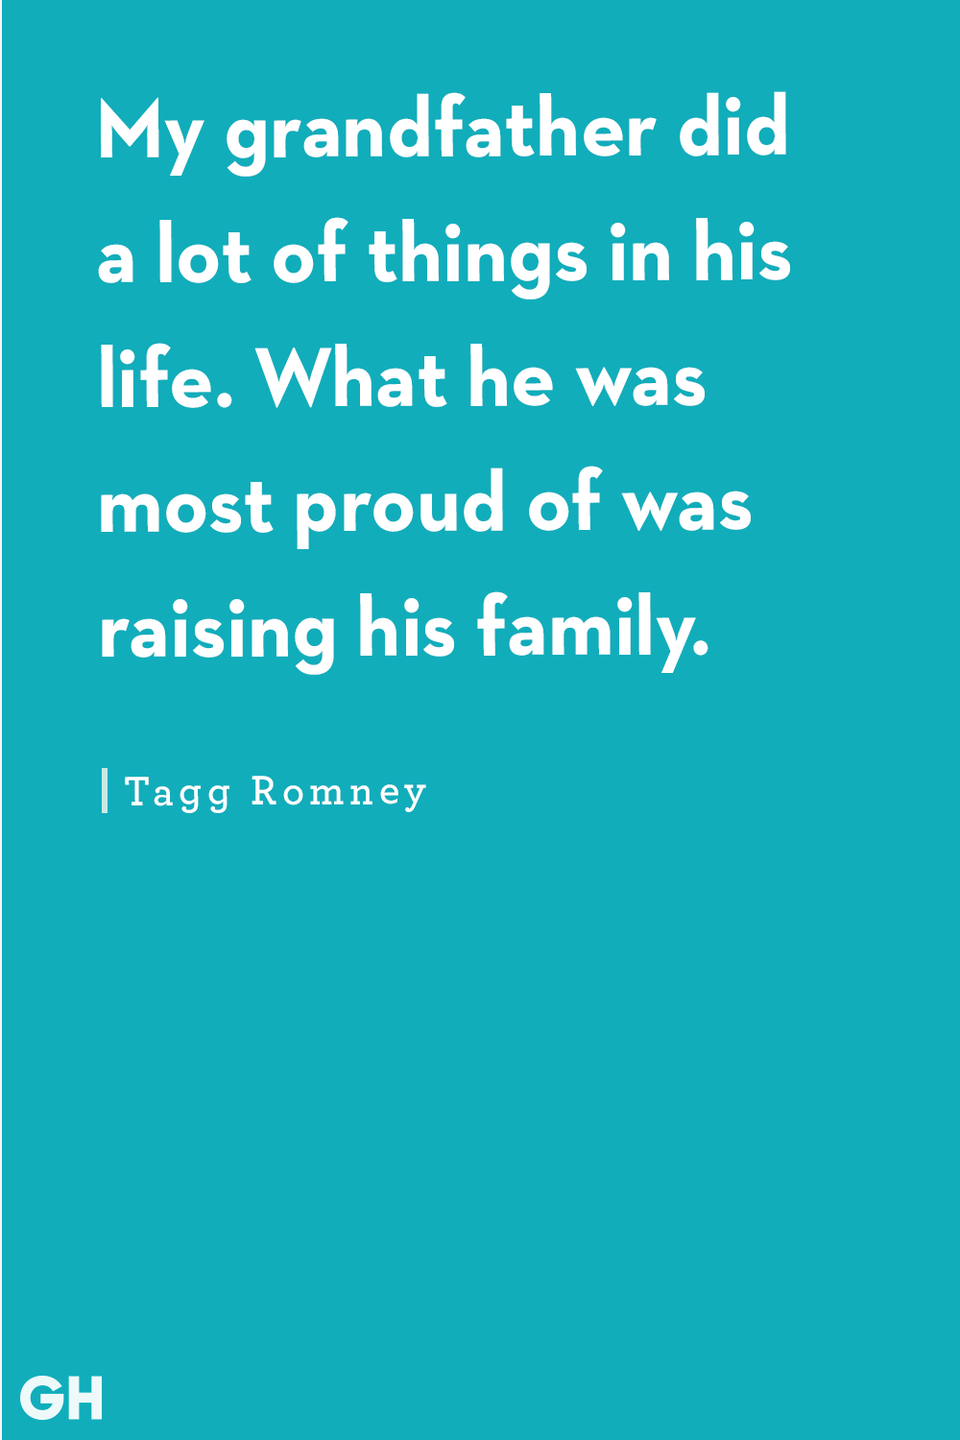 <p>My grandfather did a lot of things in his life. What he was most proud of was raising his family.</p>